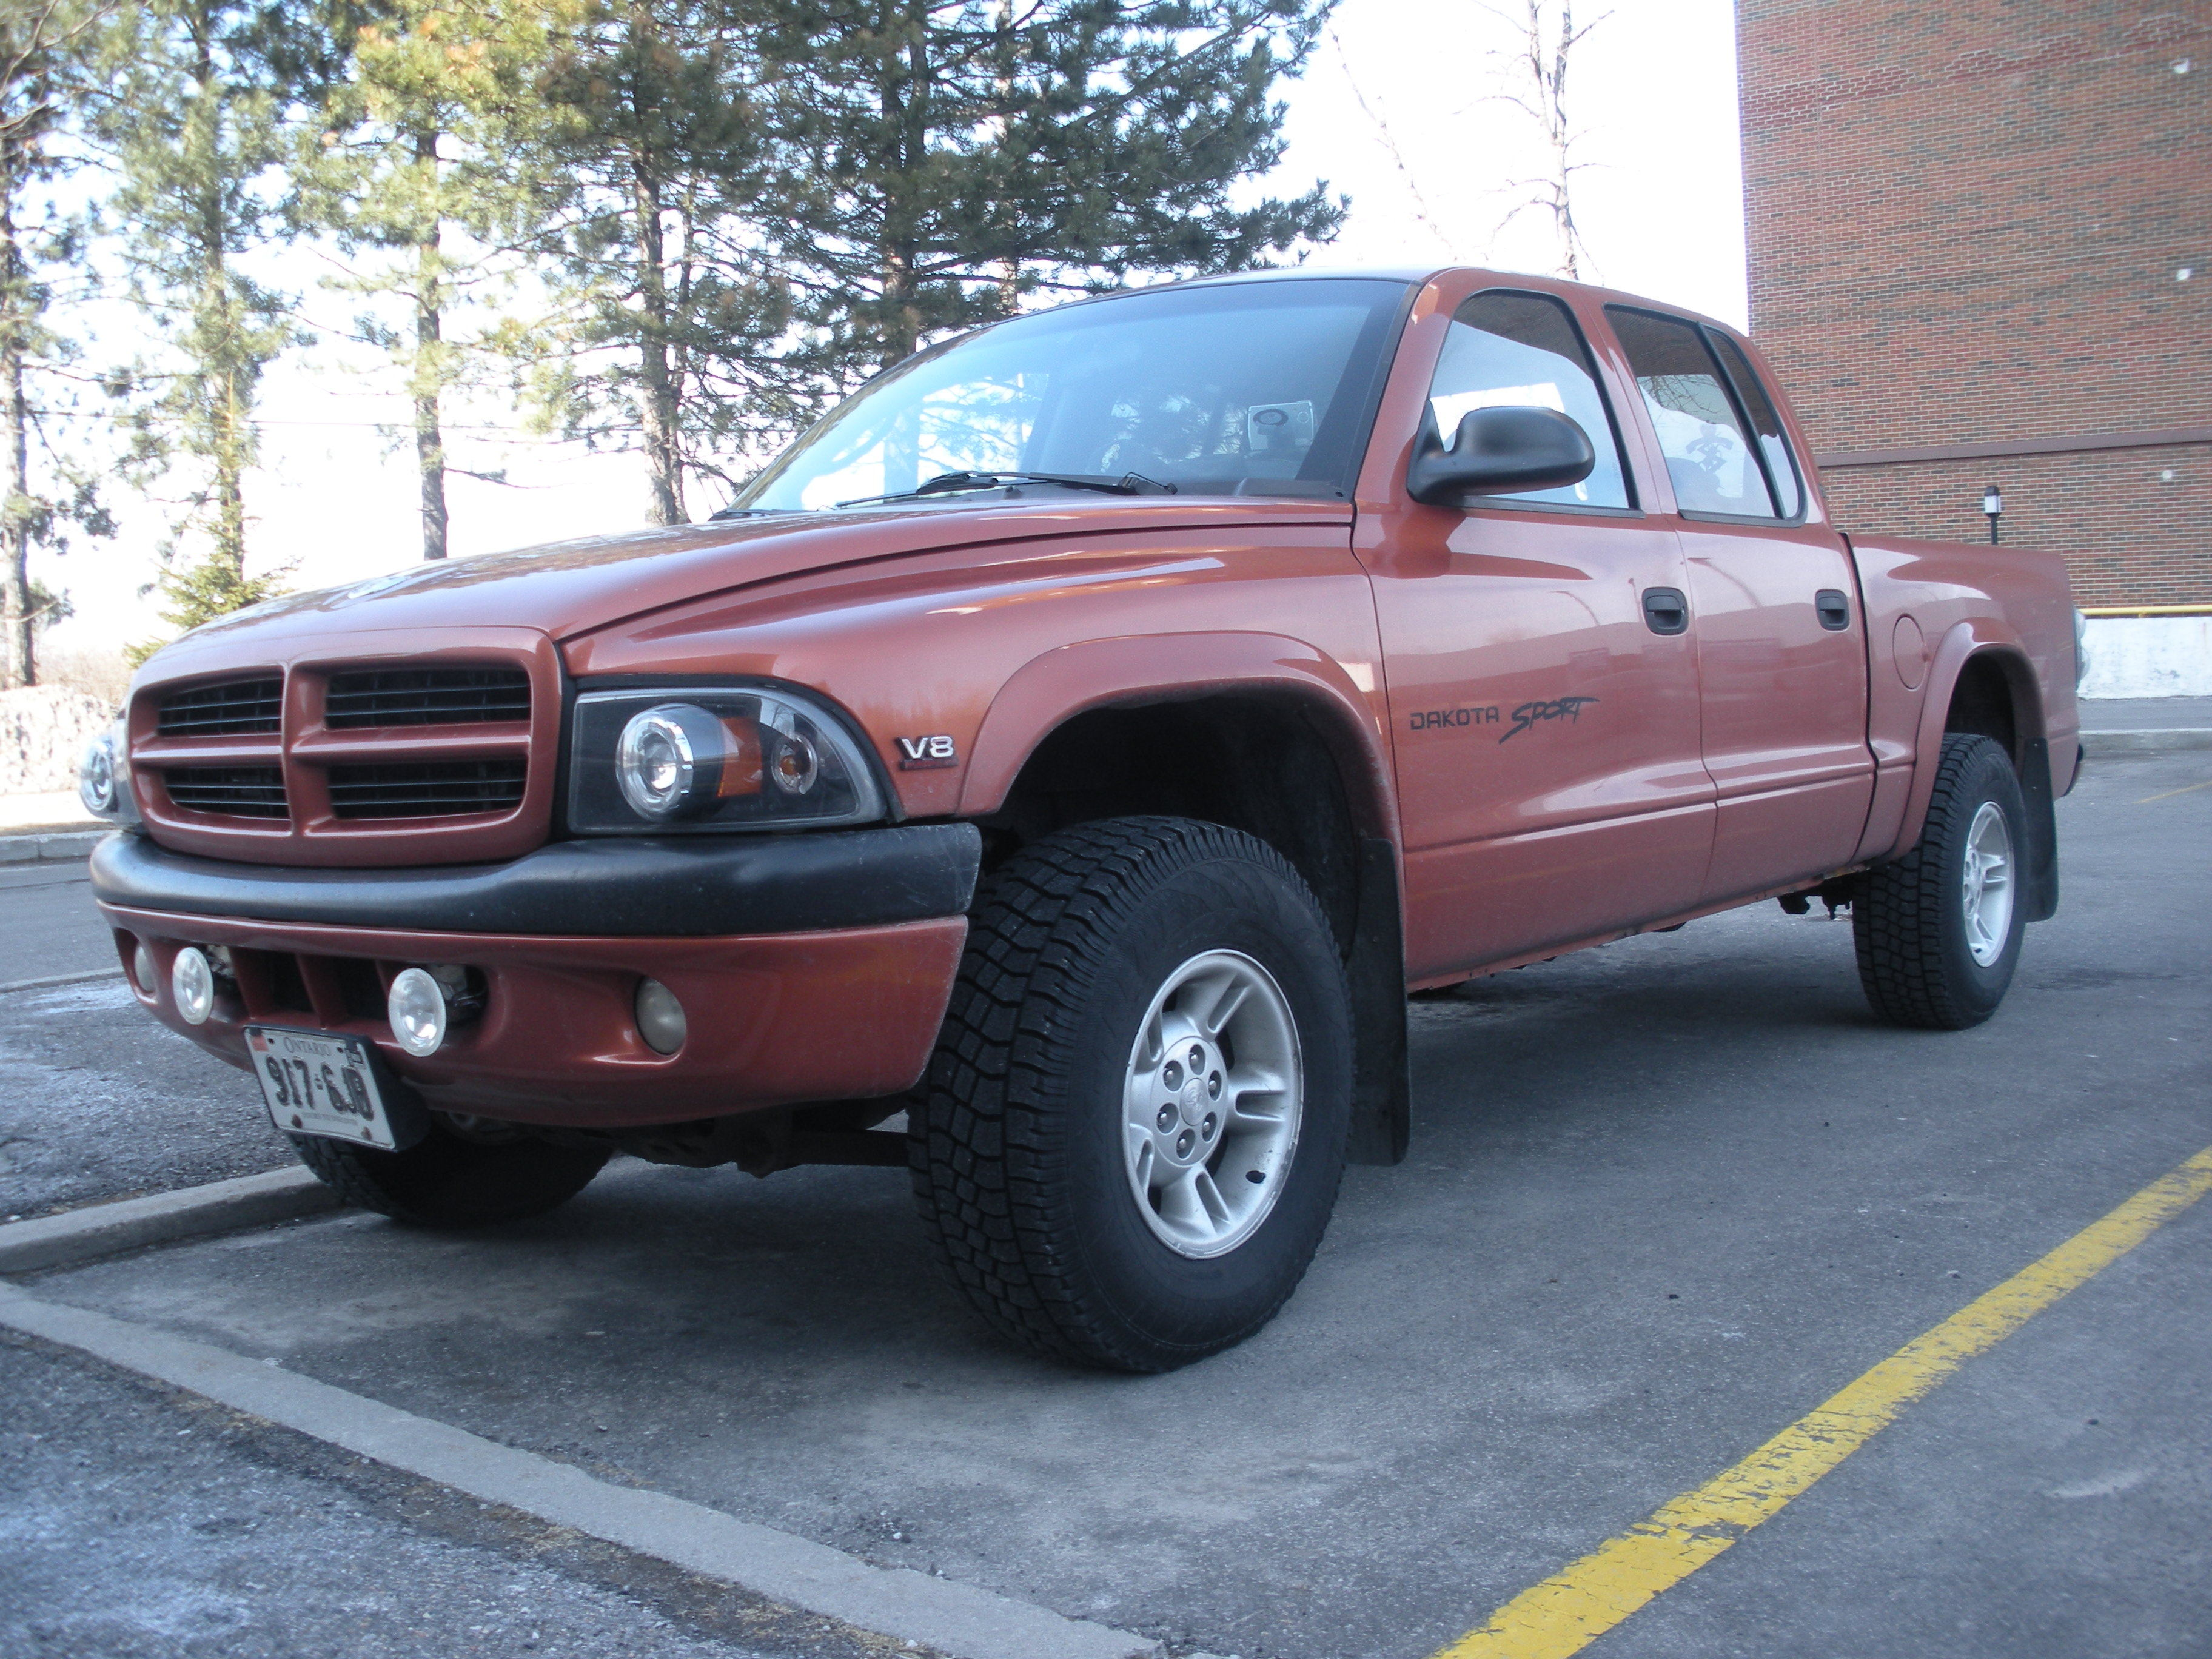 stupuff's 2000 Dodge Dakota Quad Cab